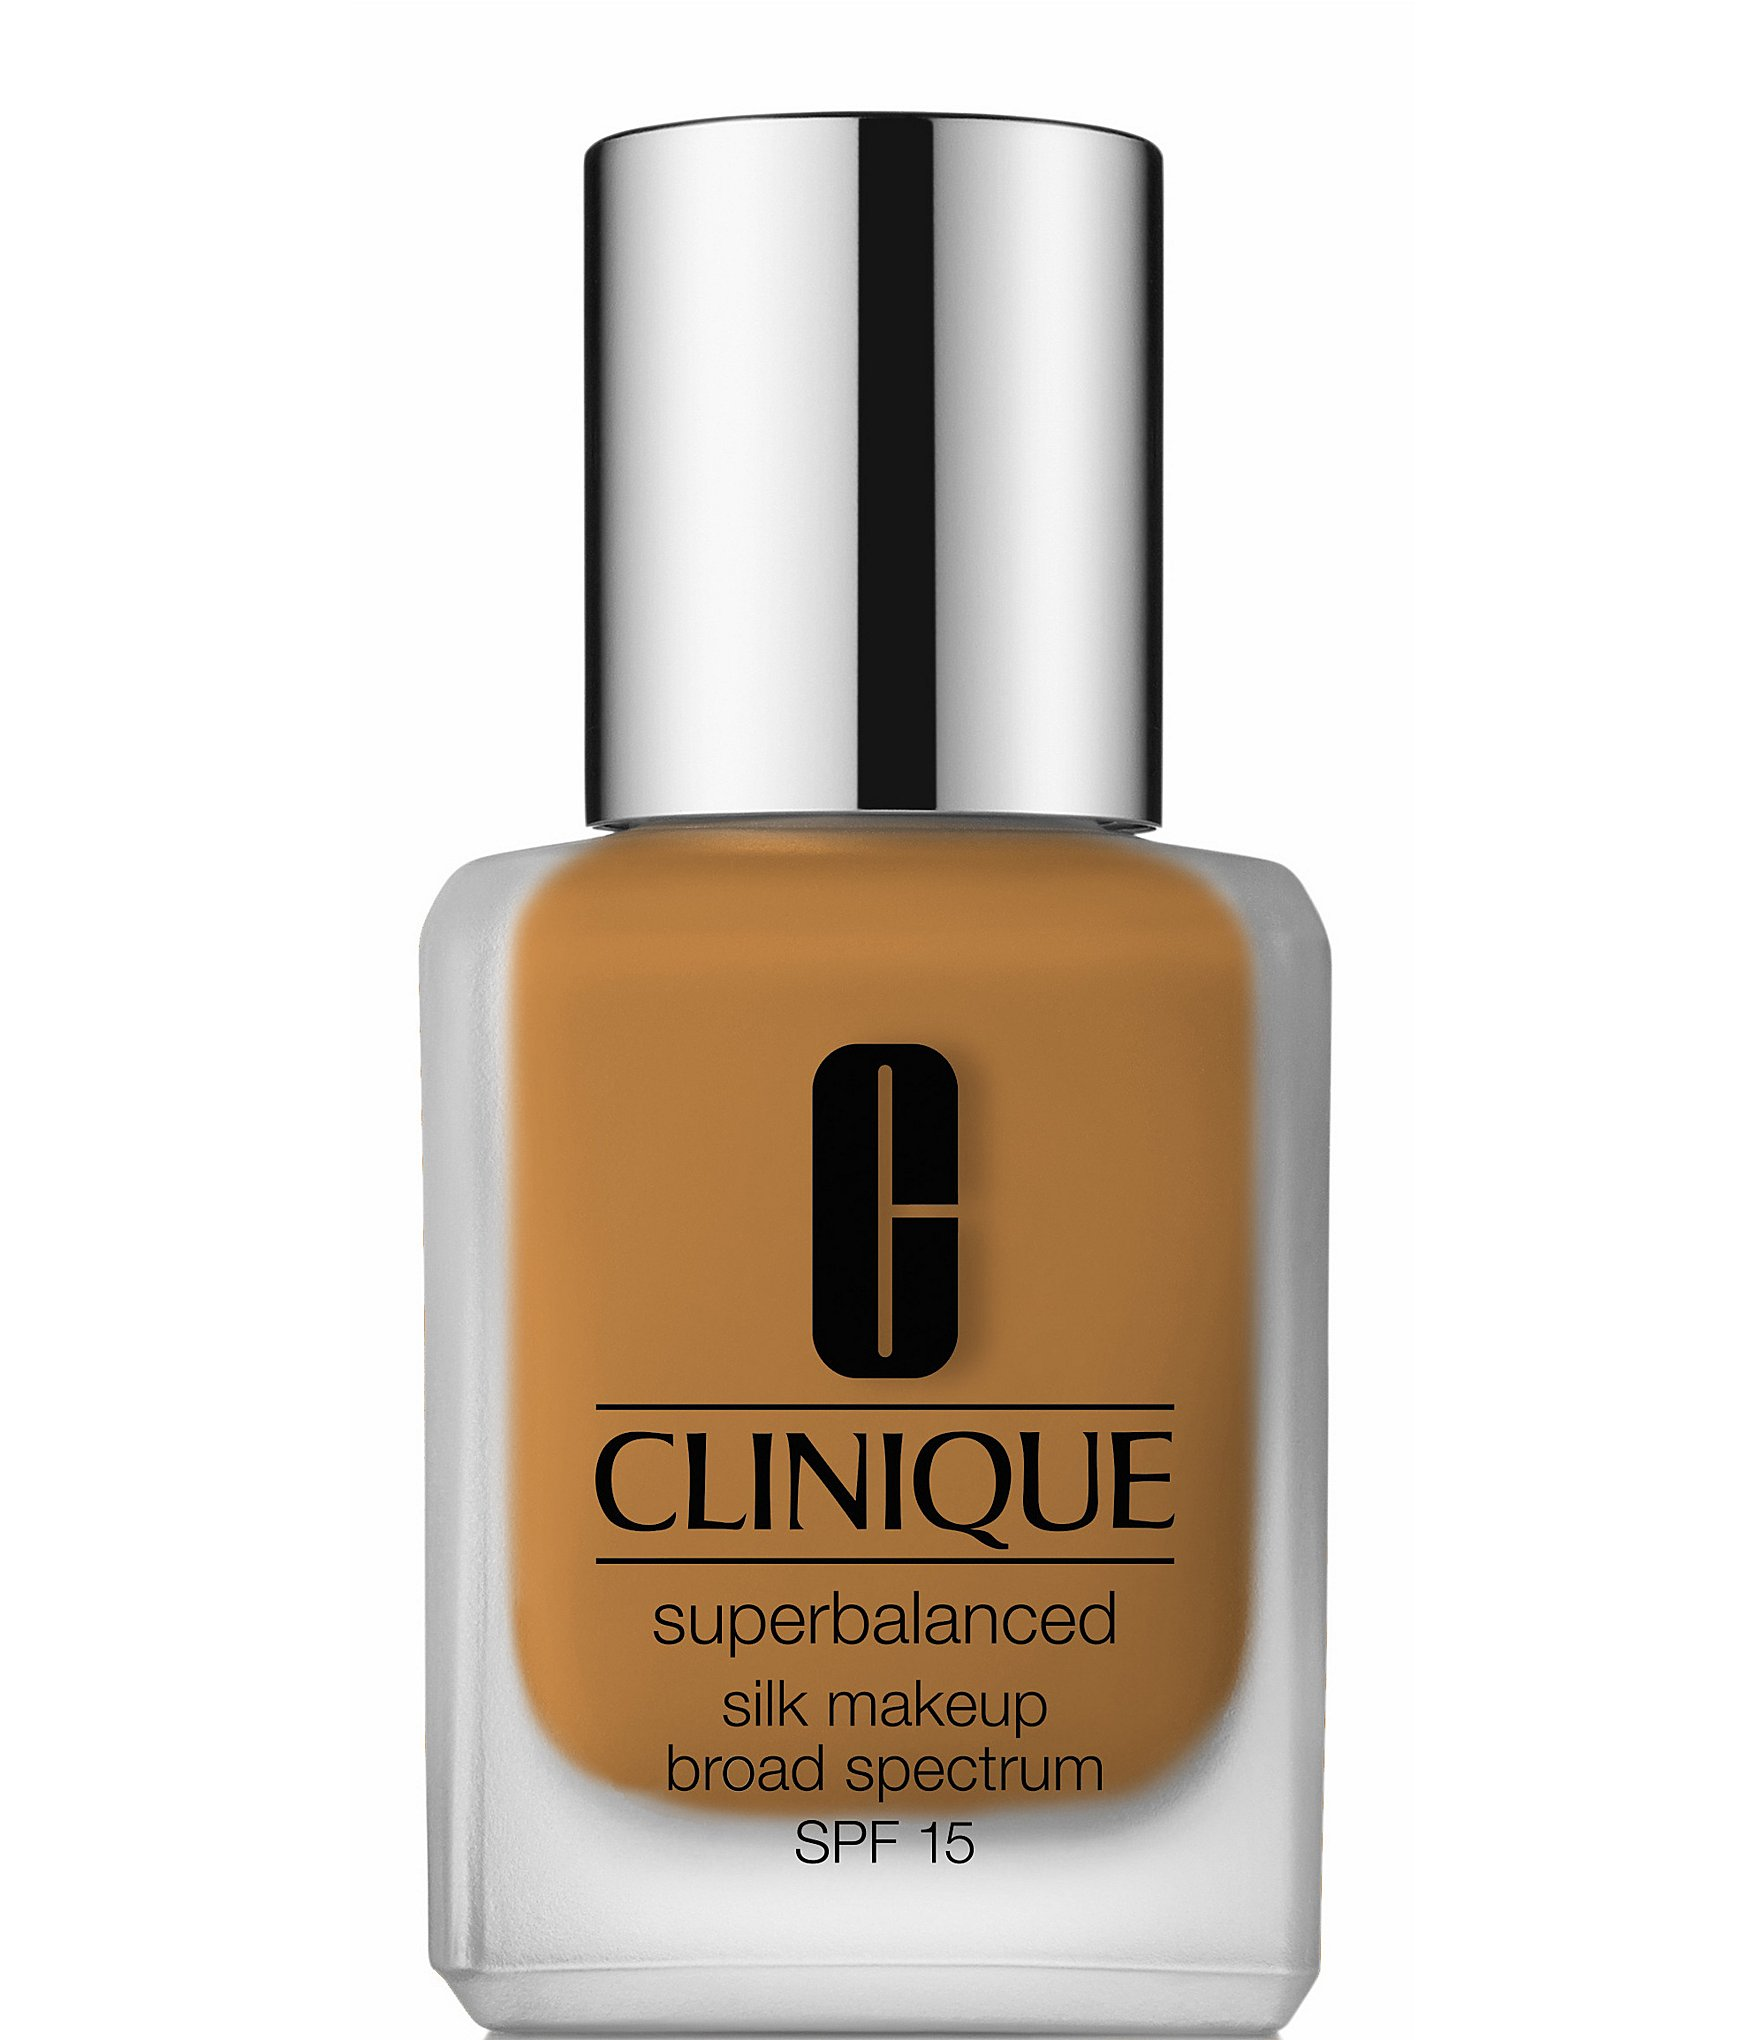 Based on Clinique's research that allergies contribute to skin aging, every Clinique product is allergy tested 7, times and formulated to be completely fragrance-free. Eye makeup is ophthalmologist tested. Lipsticks have the added benefit of including moisturizers.